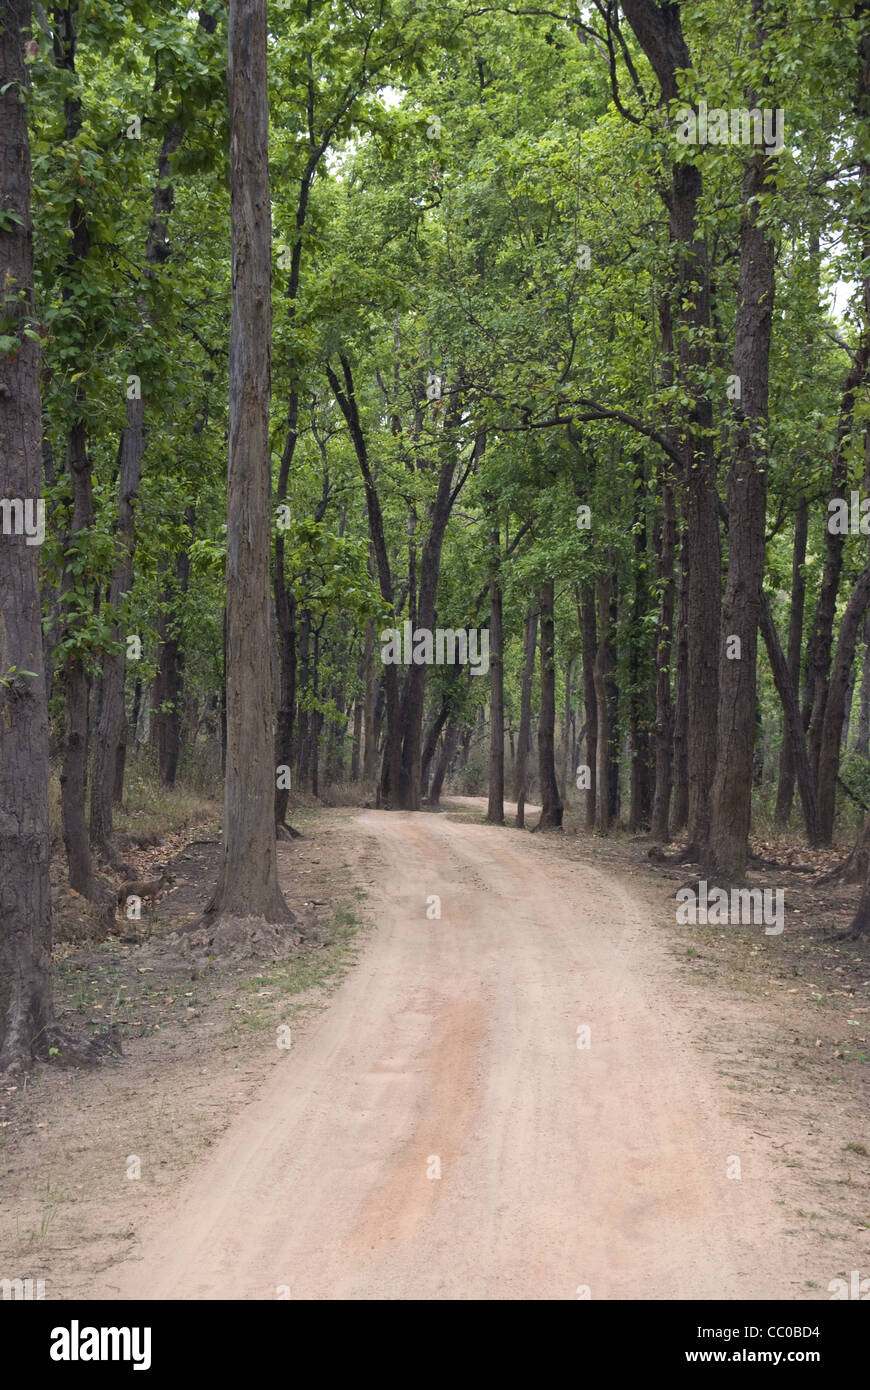 Bandhavgarh National Park, Indien Stockbild